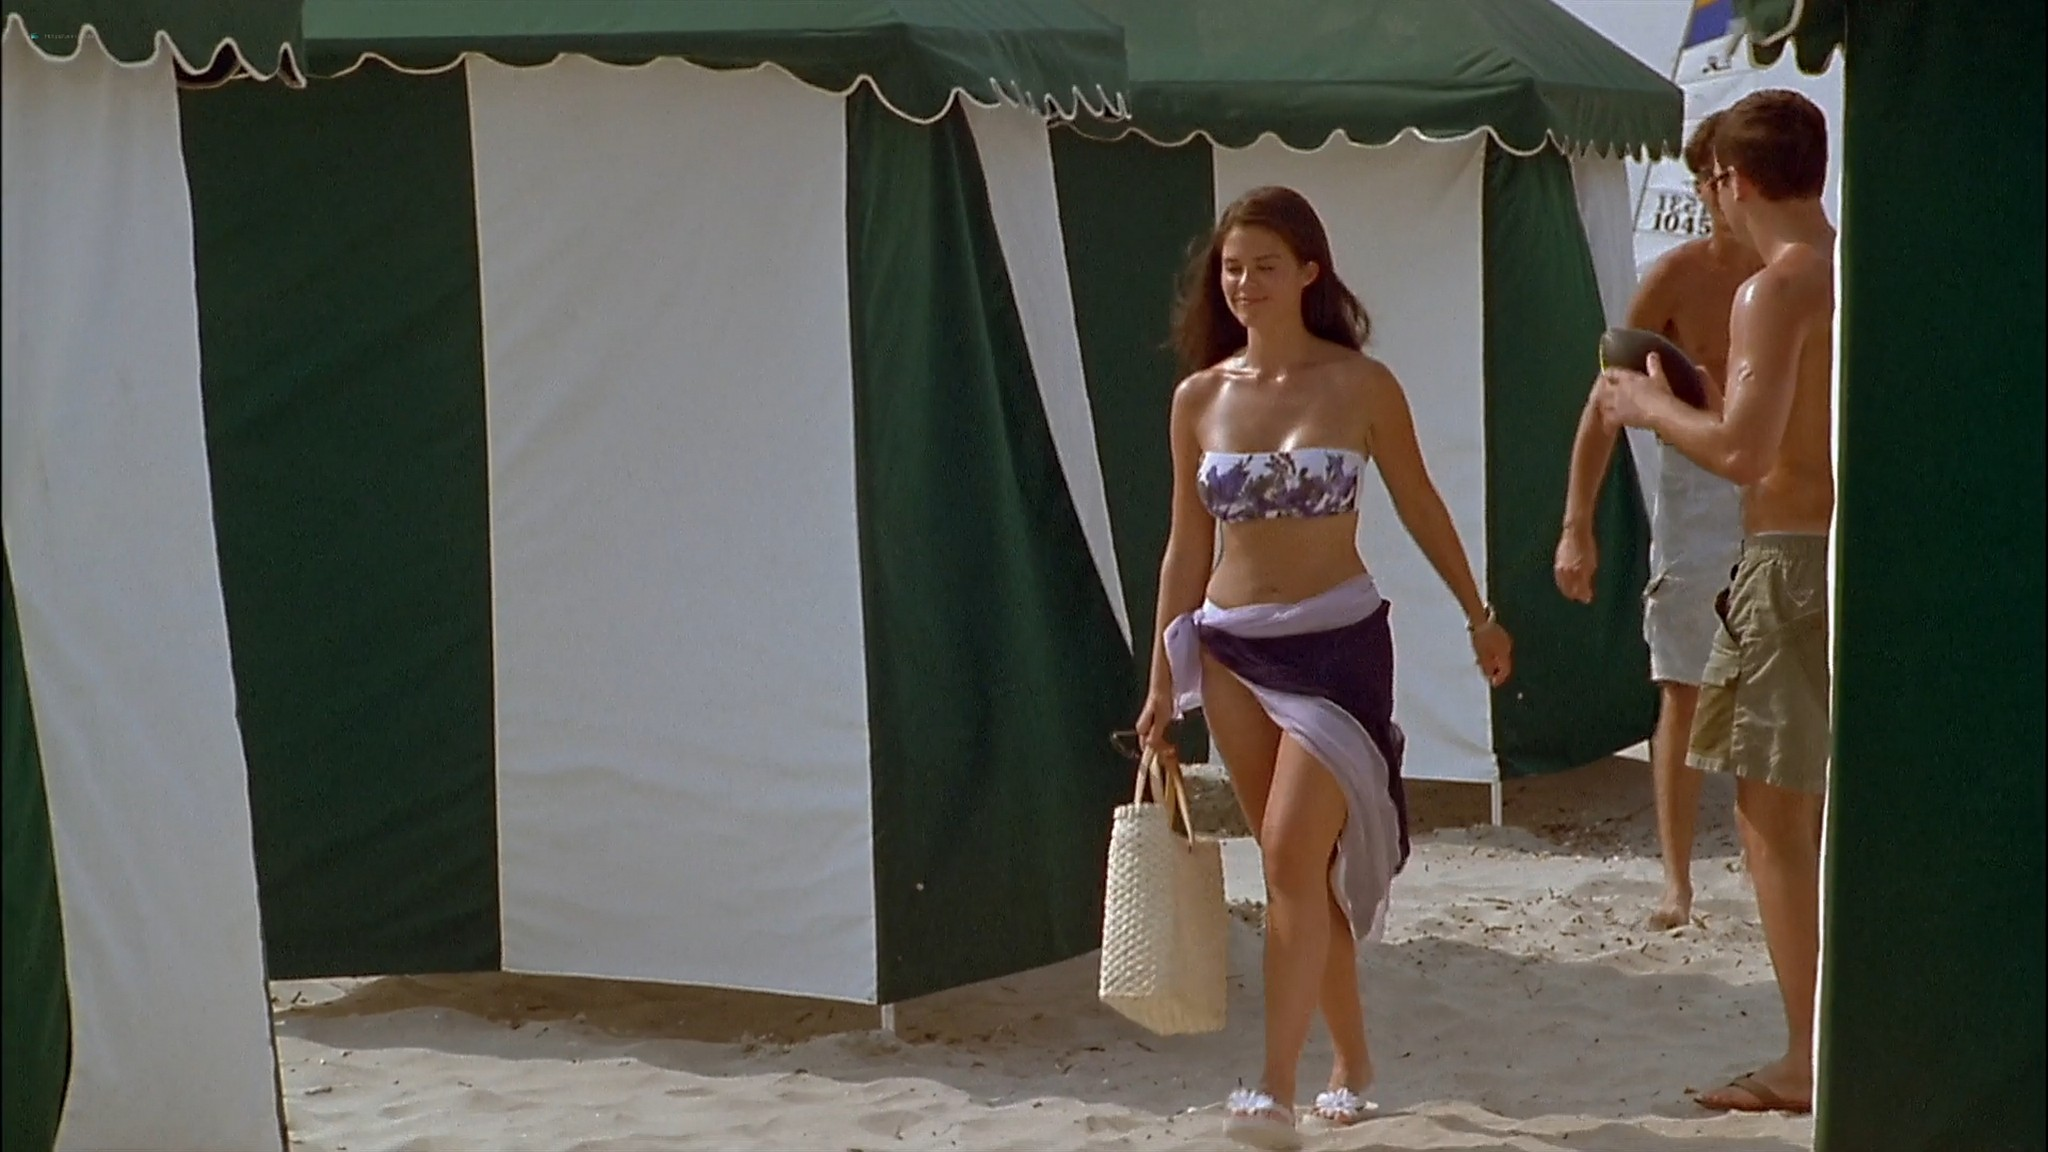 Susan Ward nude Lori Heuring Erinn Bartlett Laurie Fortier hot The In Crowd 2000 1080p Web 4